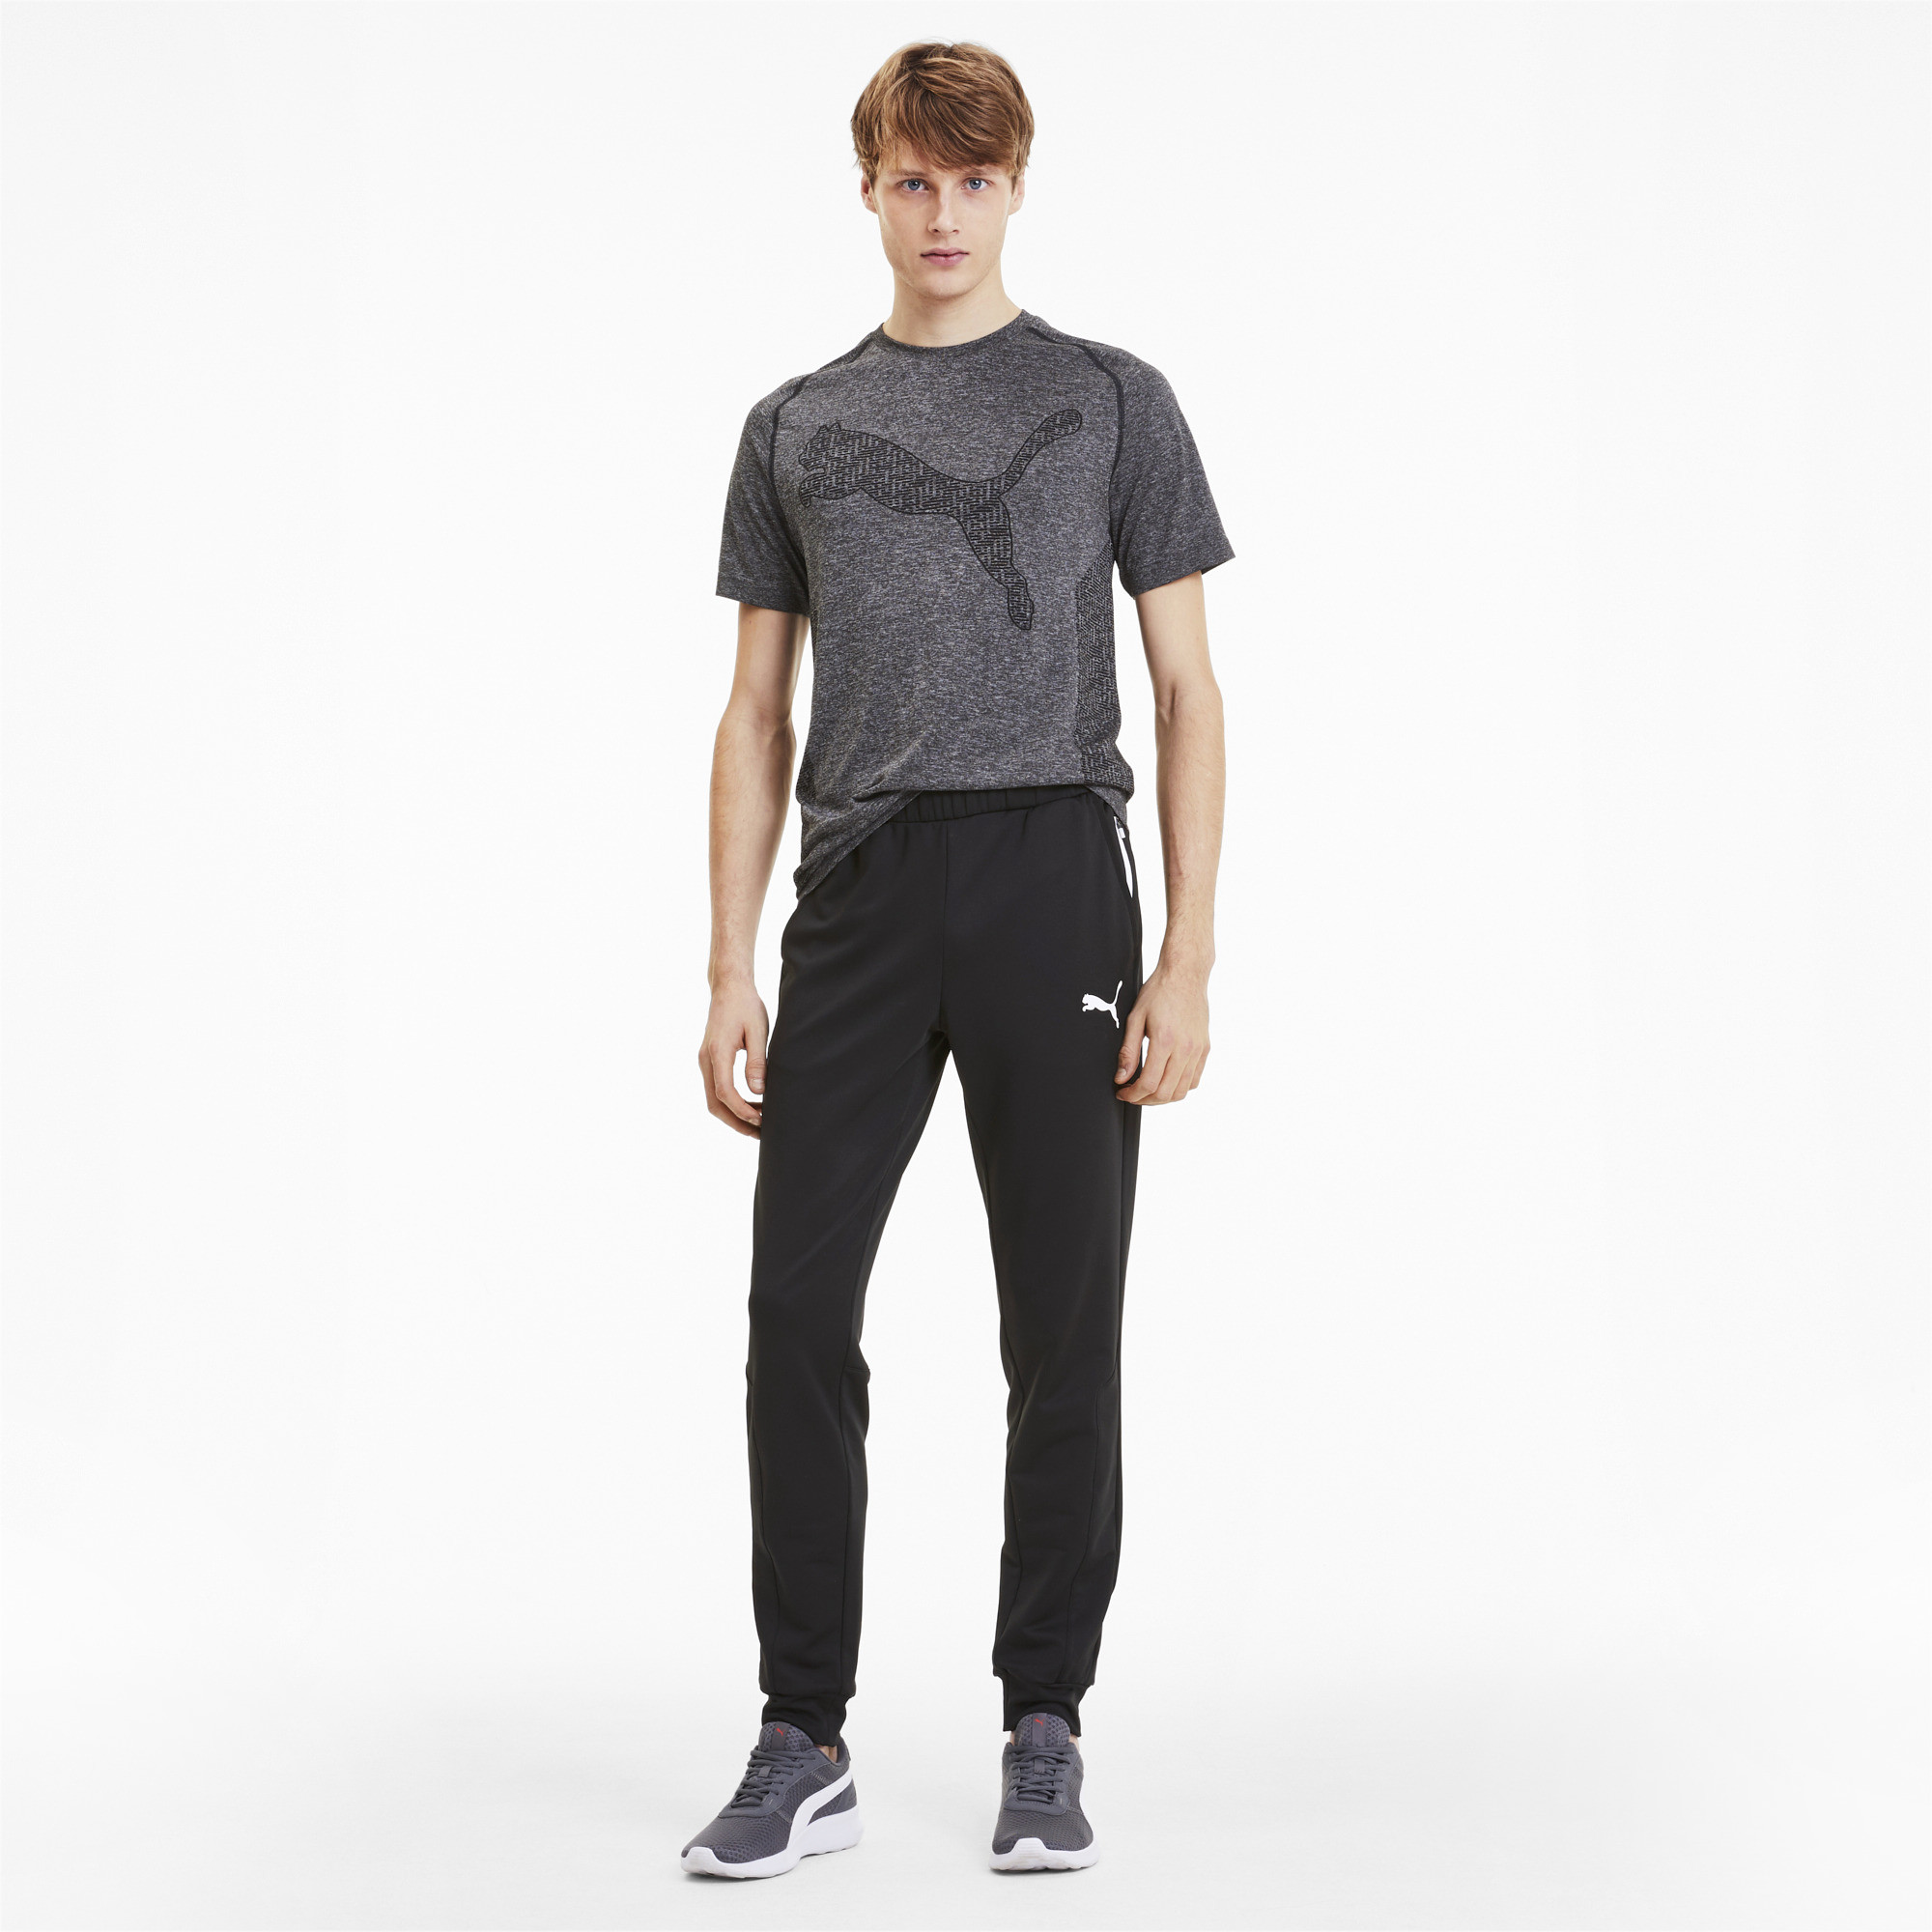 PUMA-RTG-Men-039-s-Knitted-Pants-Men-Knitted-Pants-Basics thumbnail 6